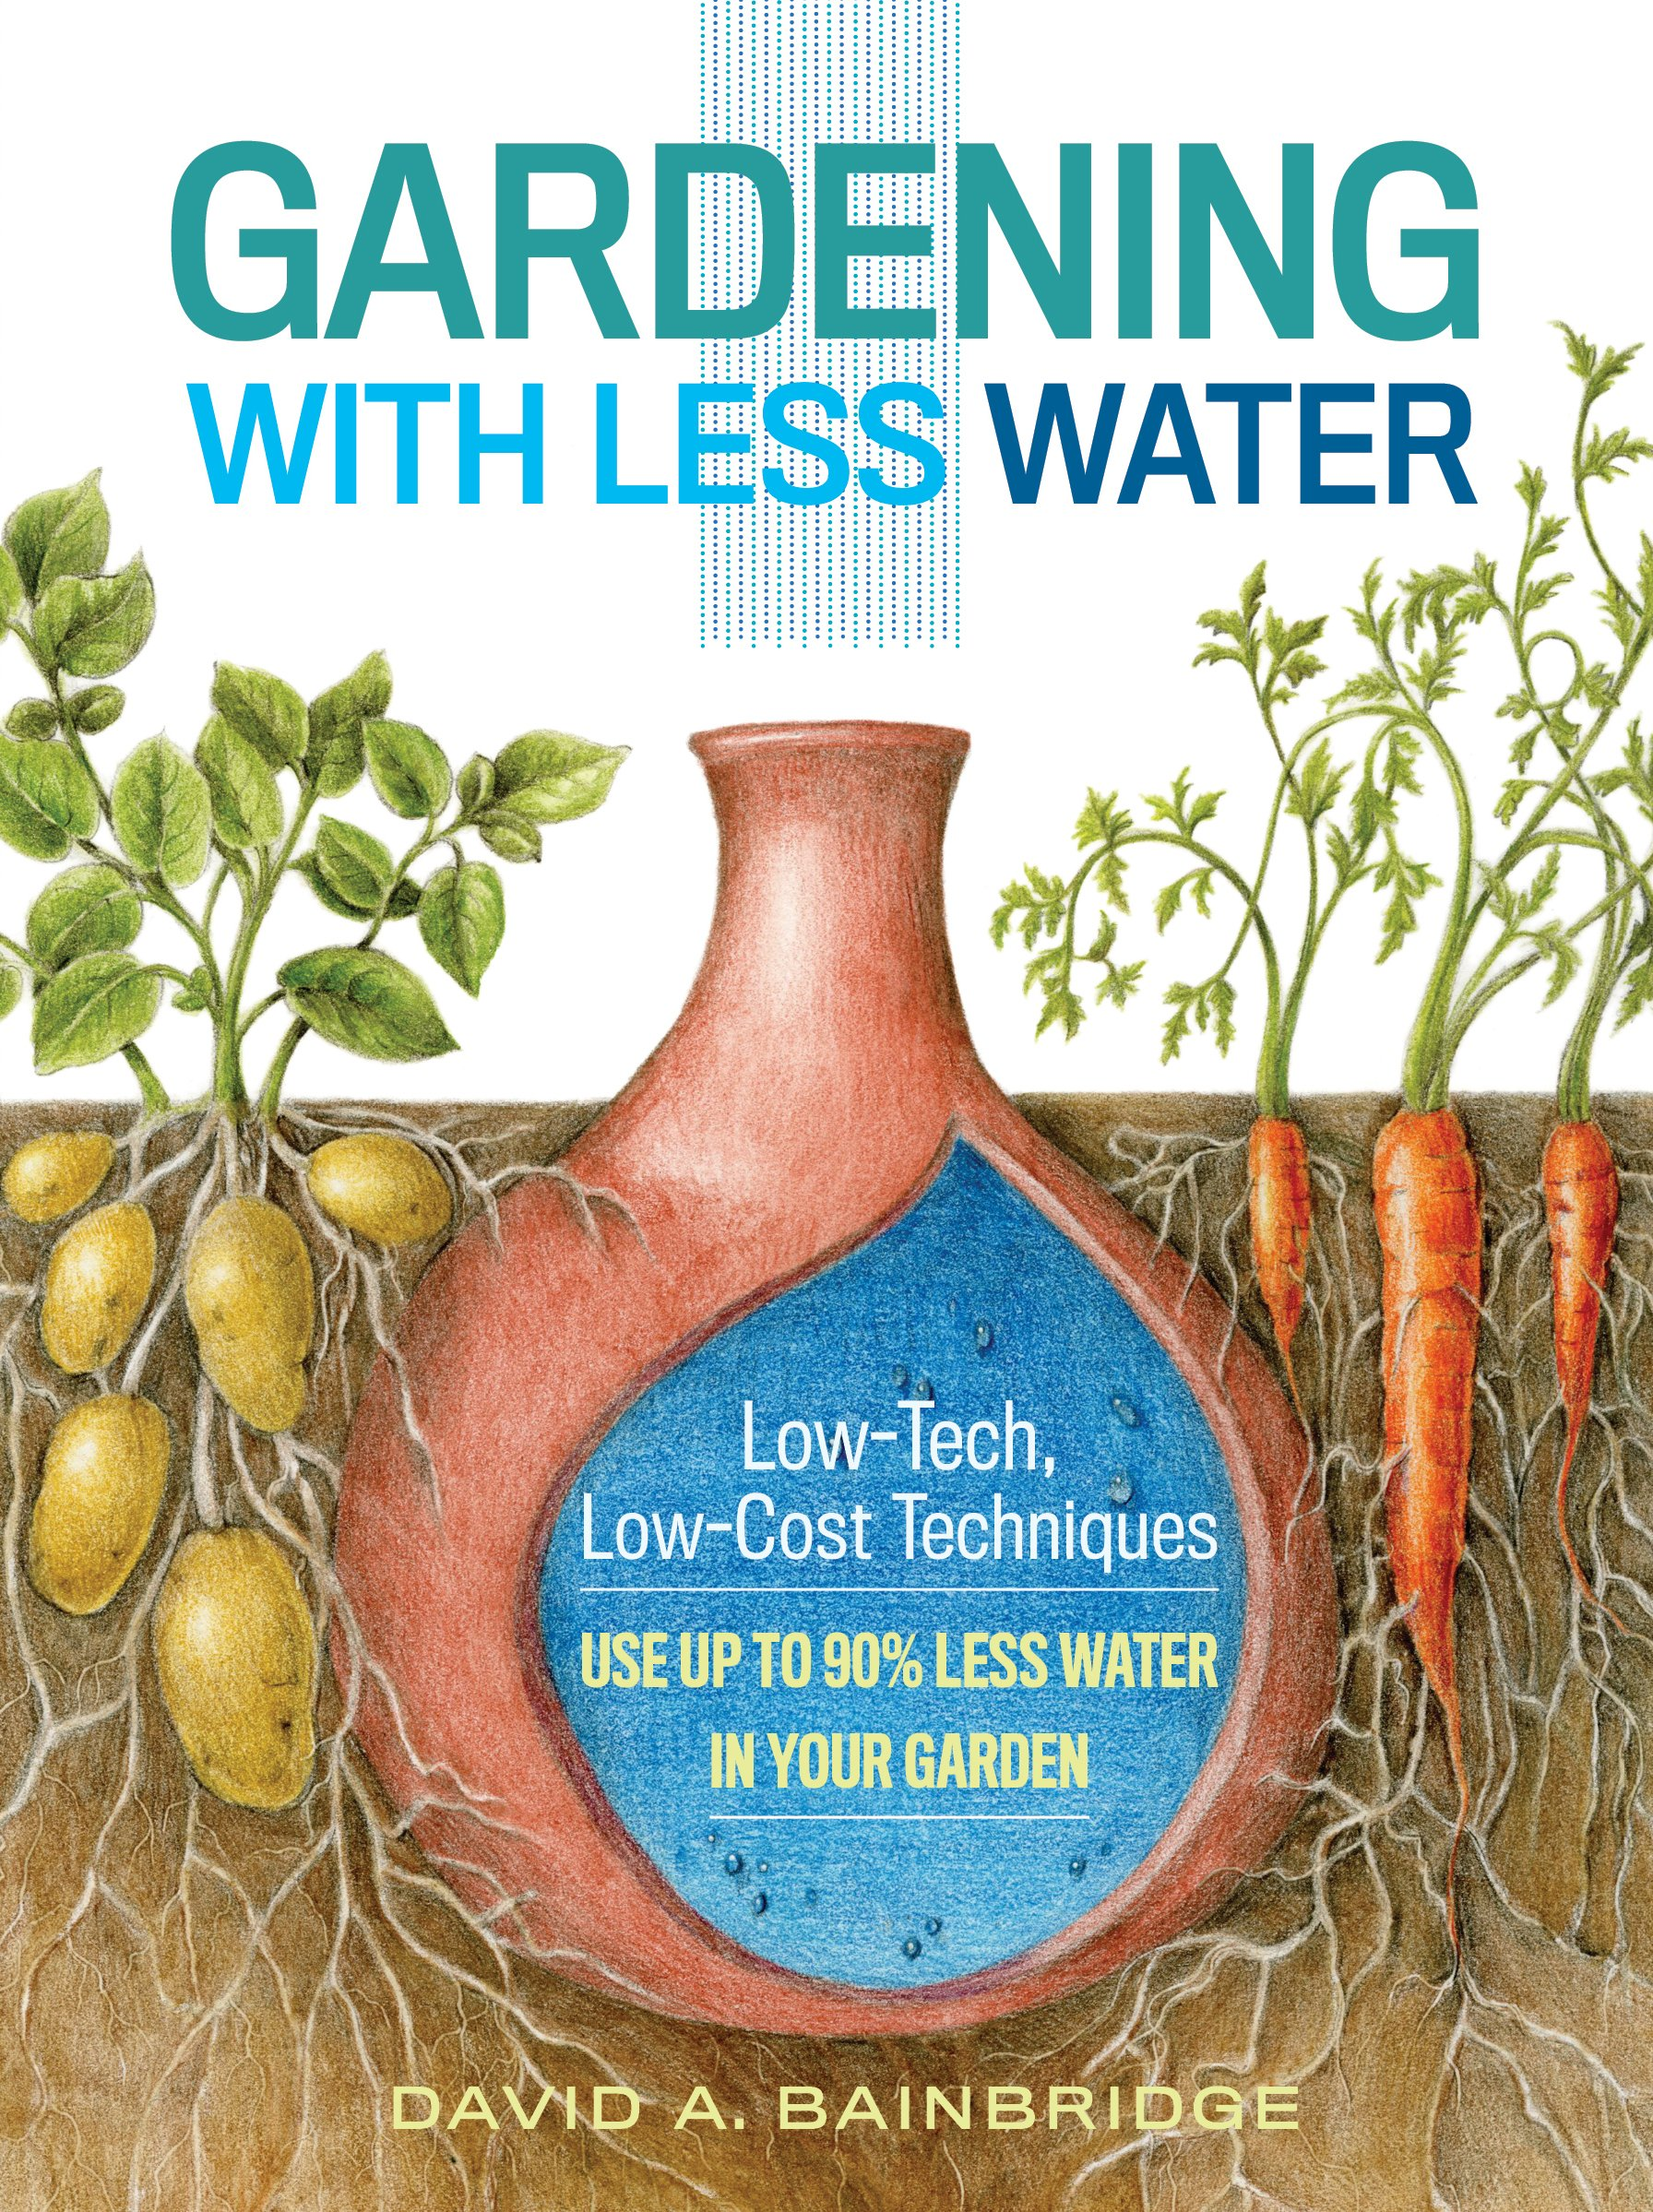 Download Gardening With Less Water: Low-Tech, Low-Cost Techniques: Use Up To 90% Less Water In Your Garden 